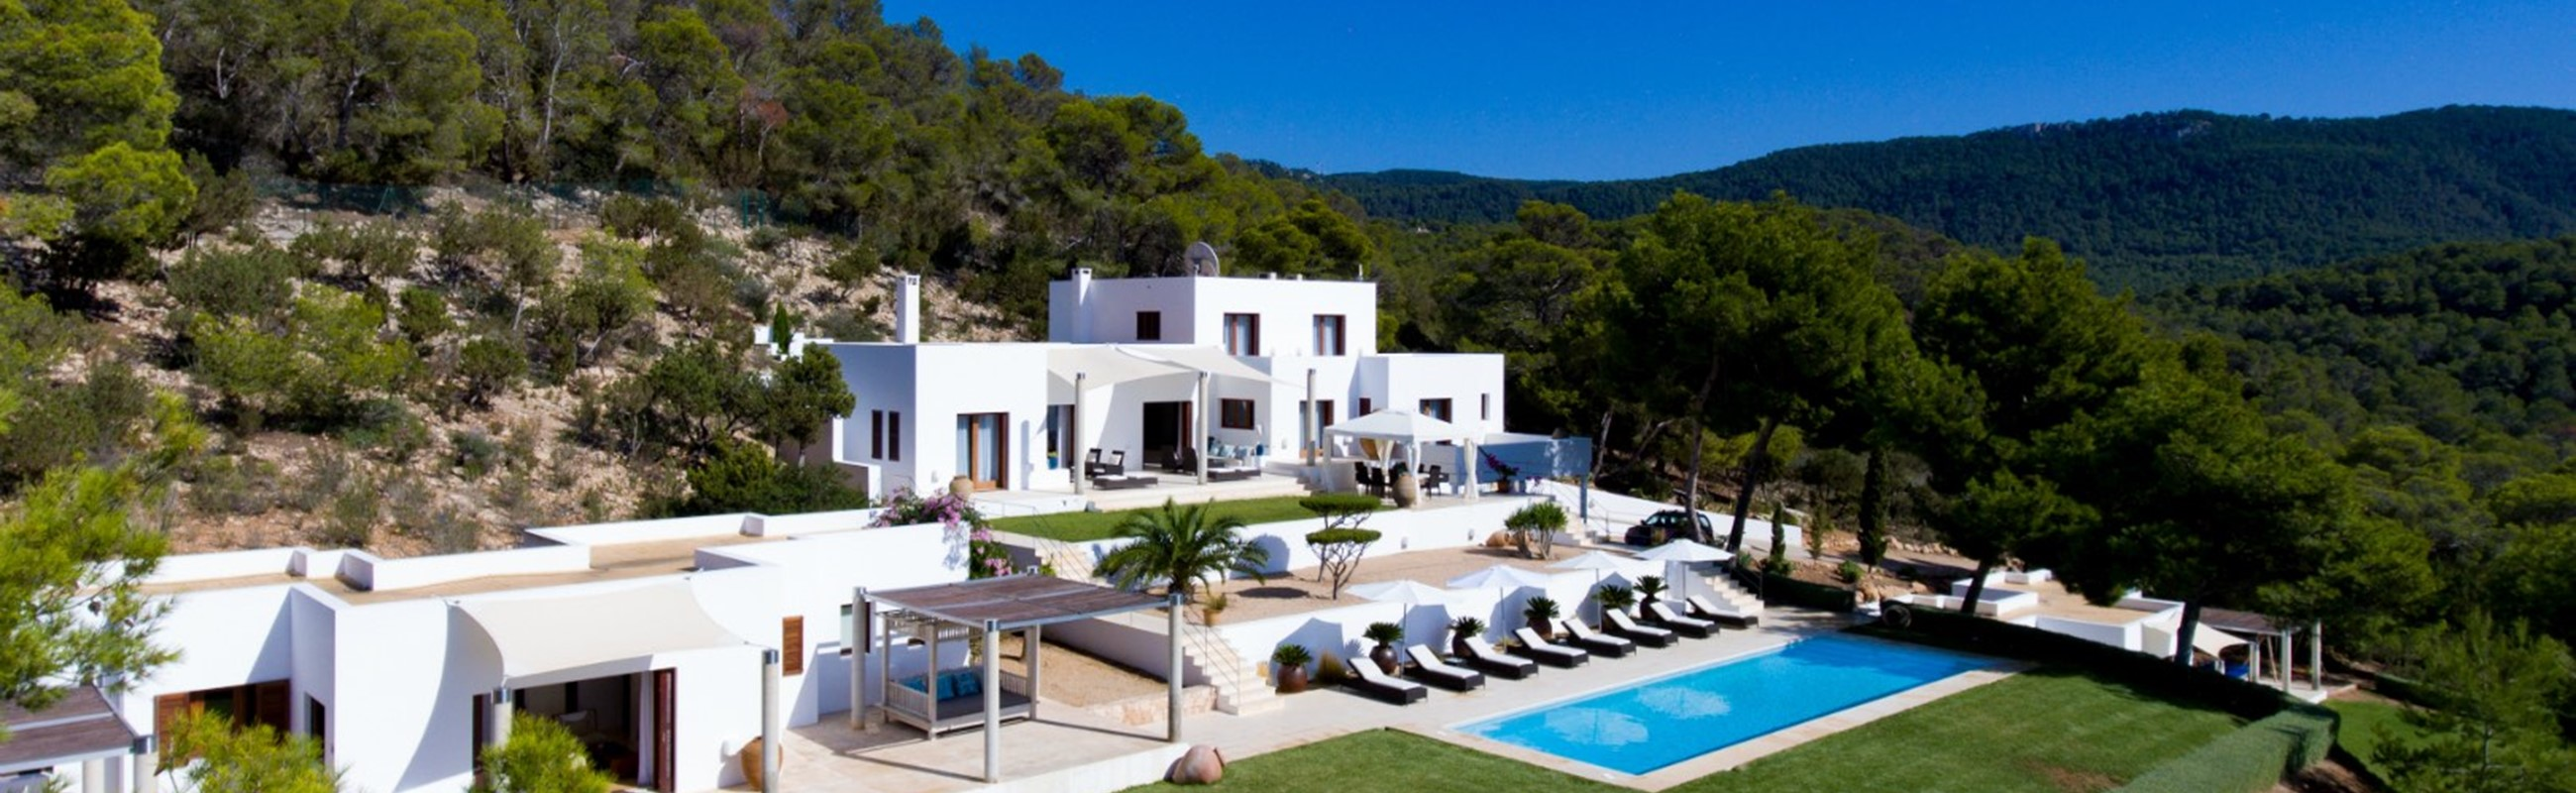 Luxury Holiday Villas To Rent In Ibiza Azure Holidays